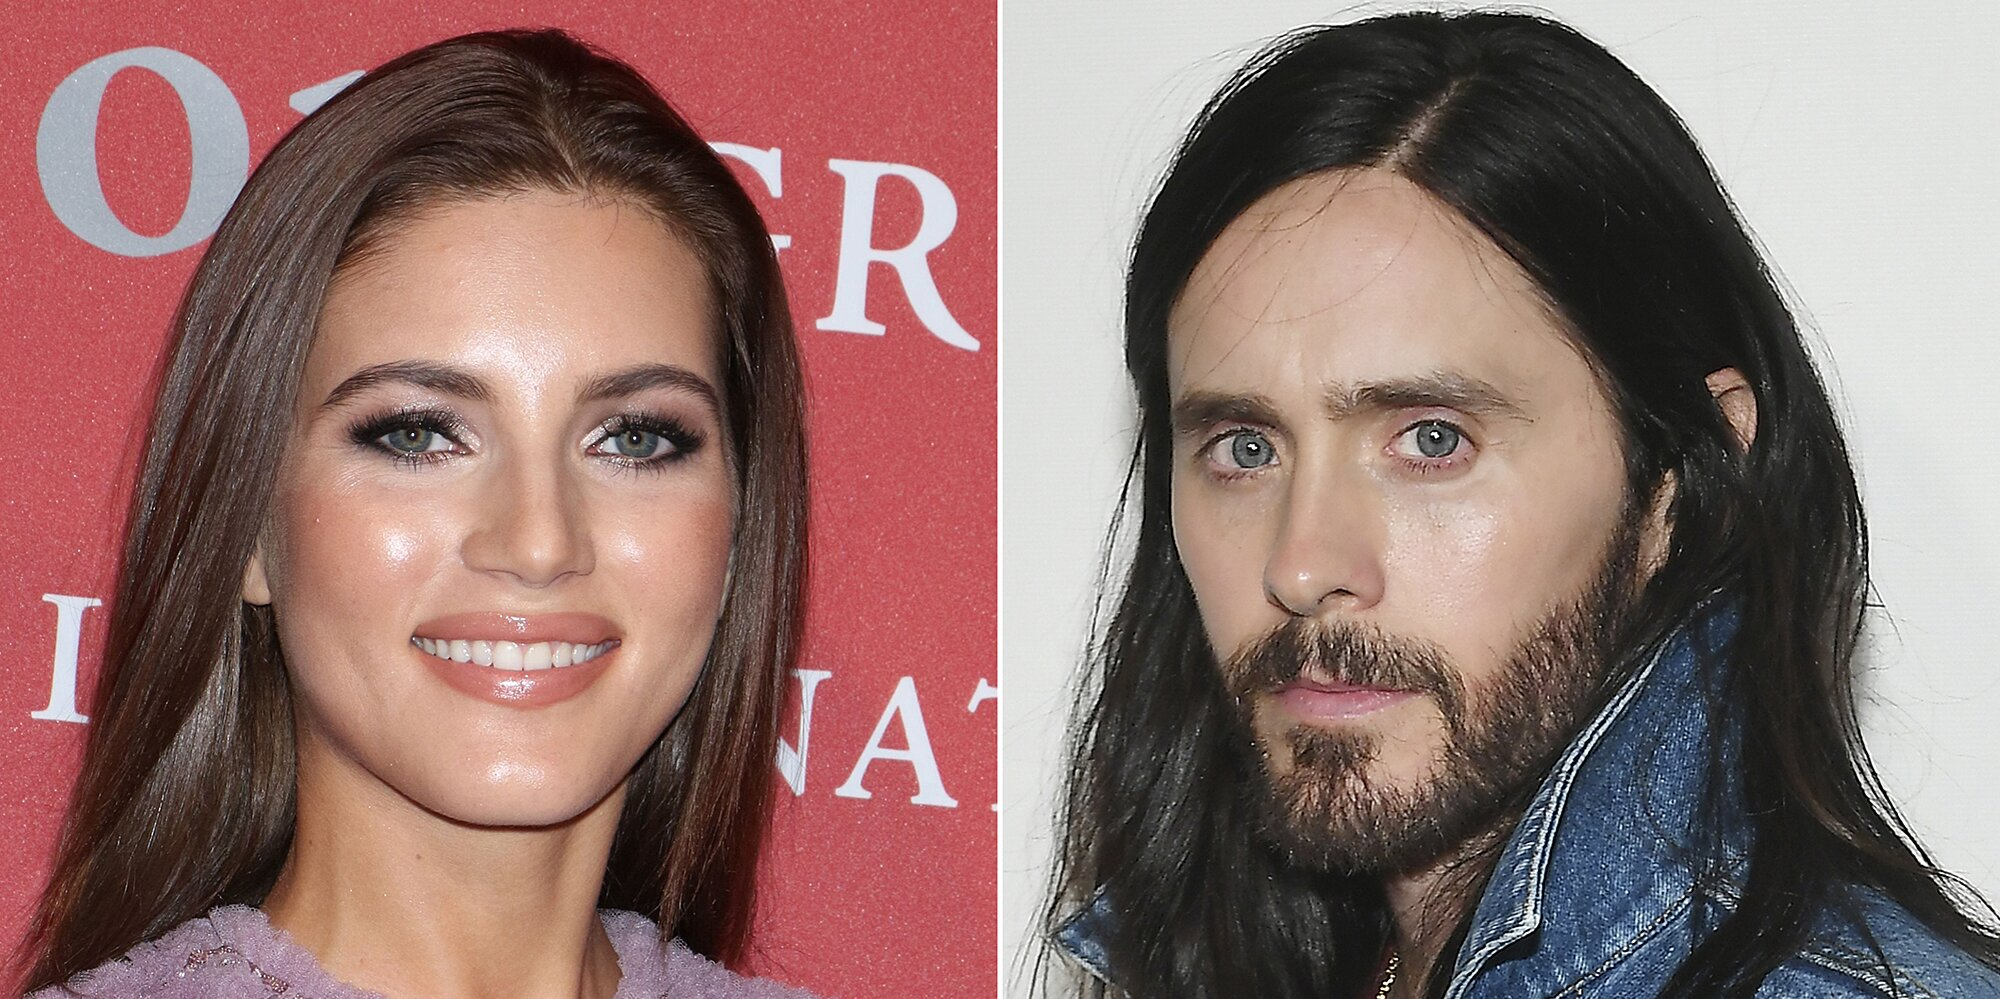 Daughter jared leto Yahoo is